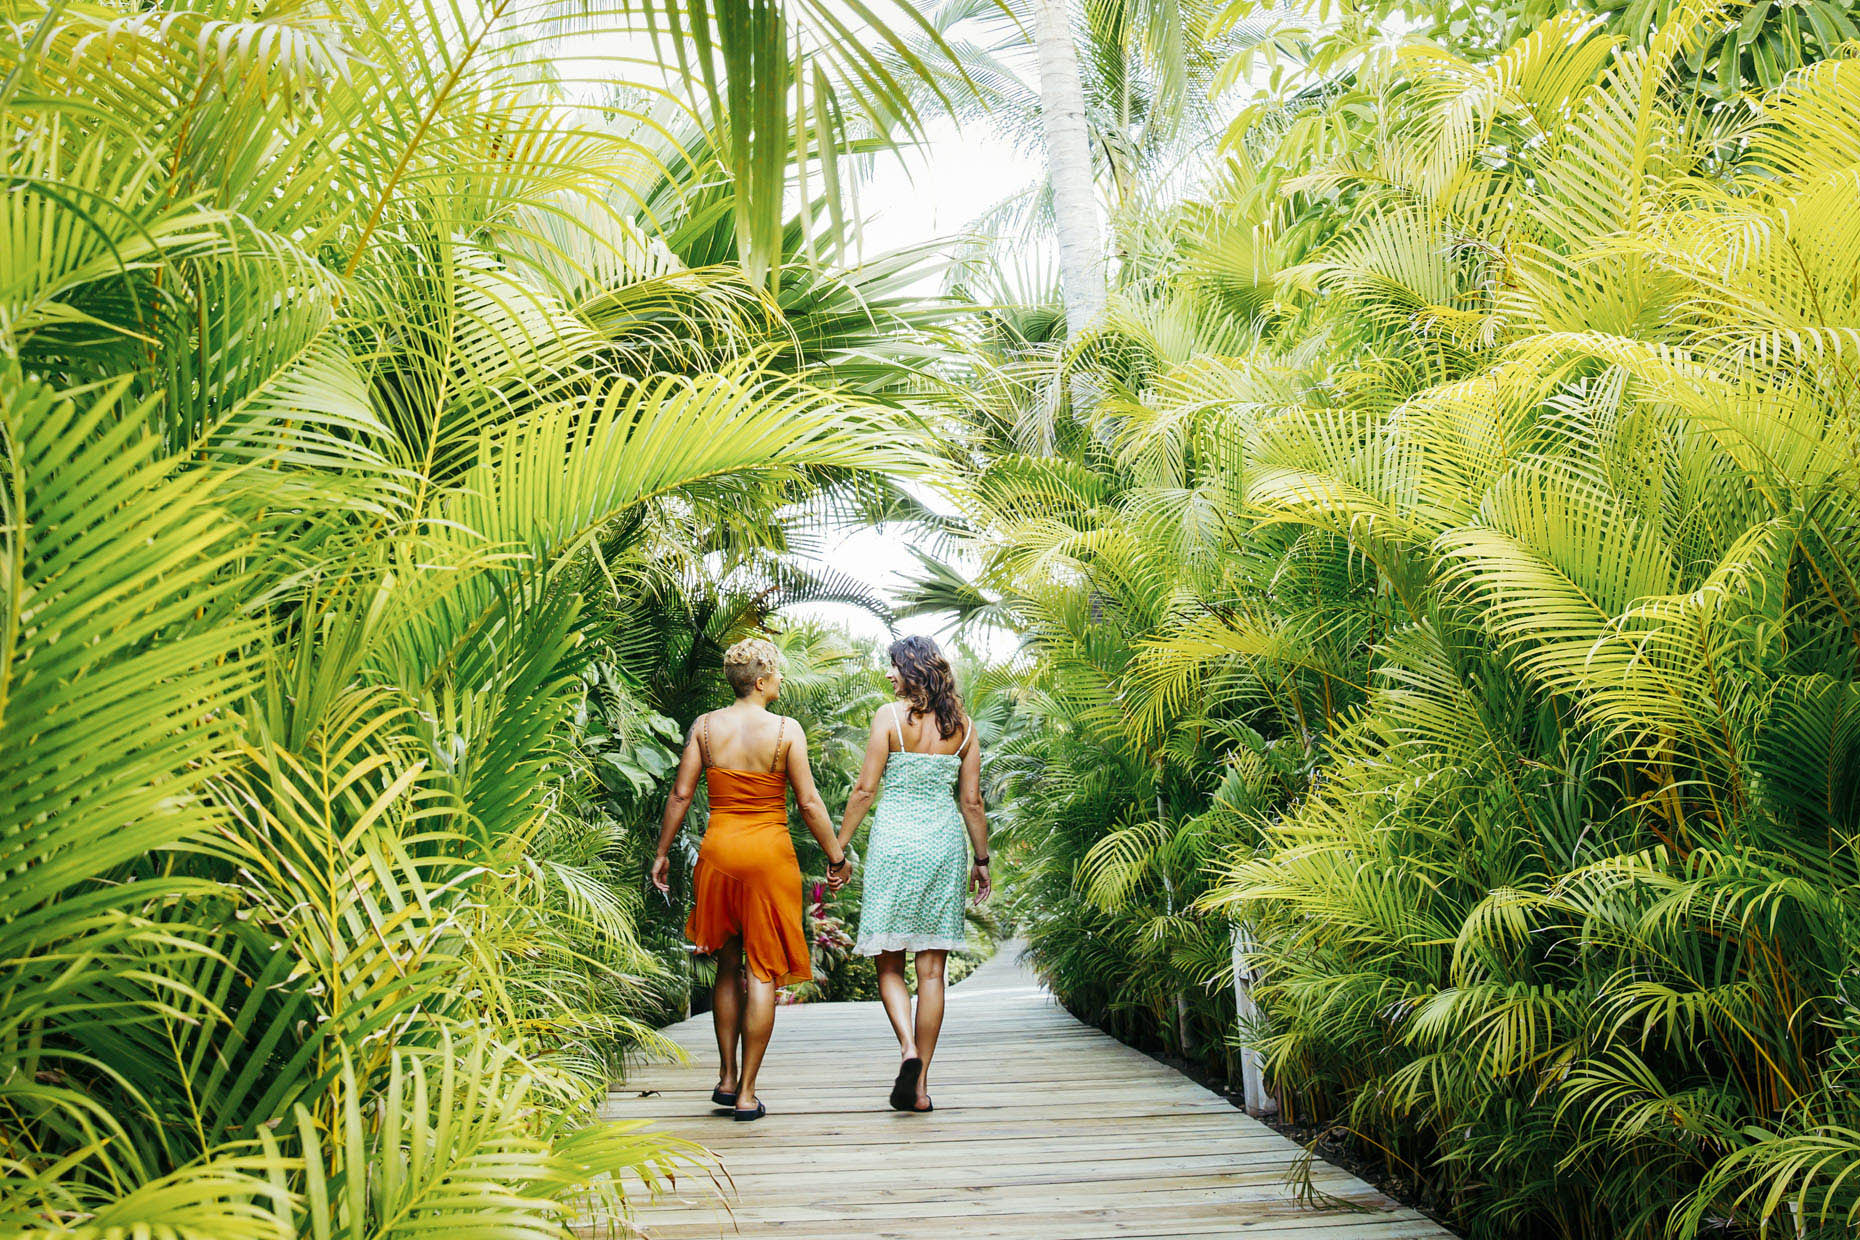 Lesbian-couple-walking-holding-hands-on-path-in-tropics-Mexico-Inti-St-Clair-is201404130602